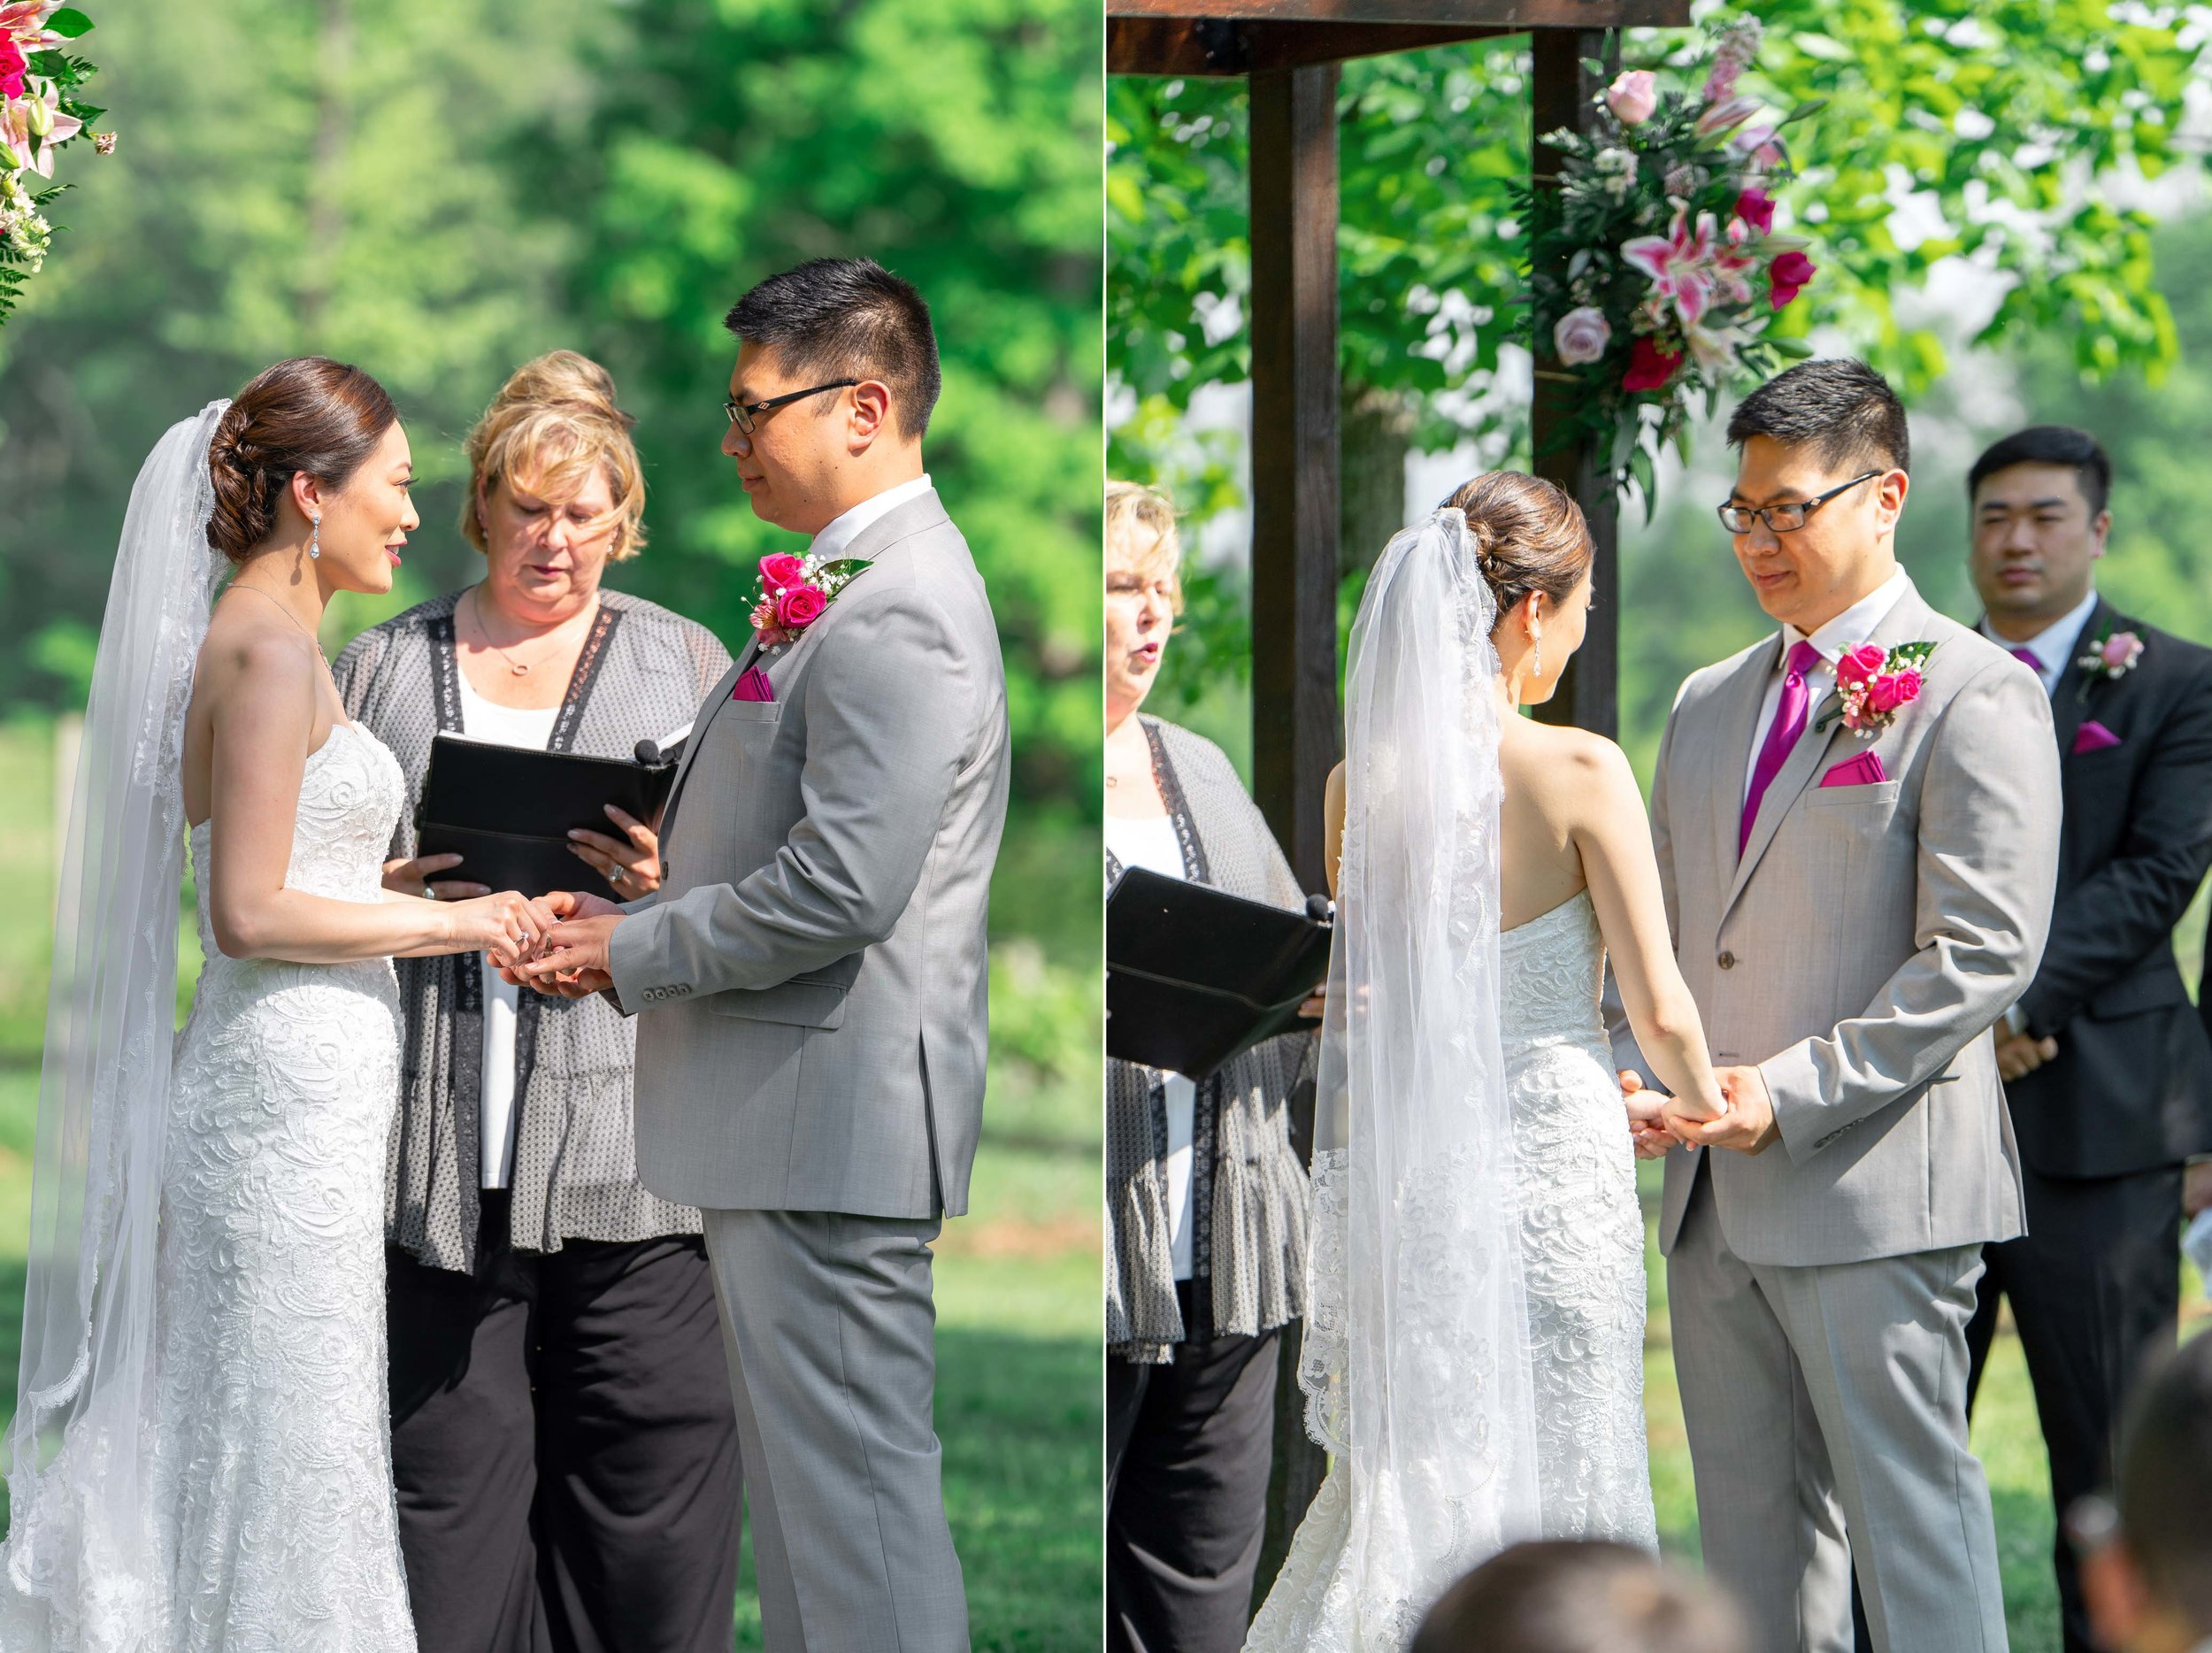 Collage of Sony a7riii and Sony a9 wedding ceremony photography